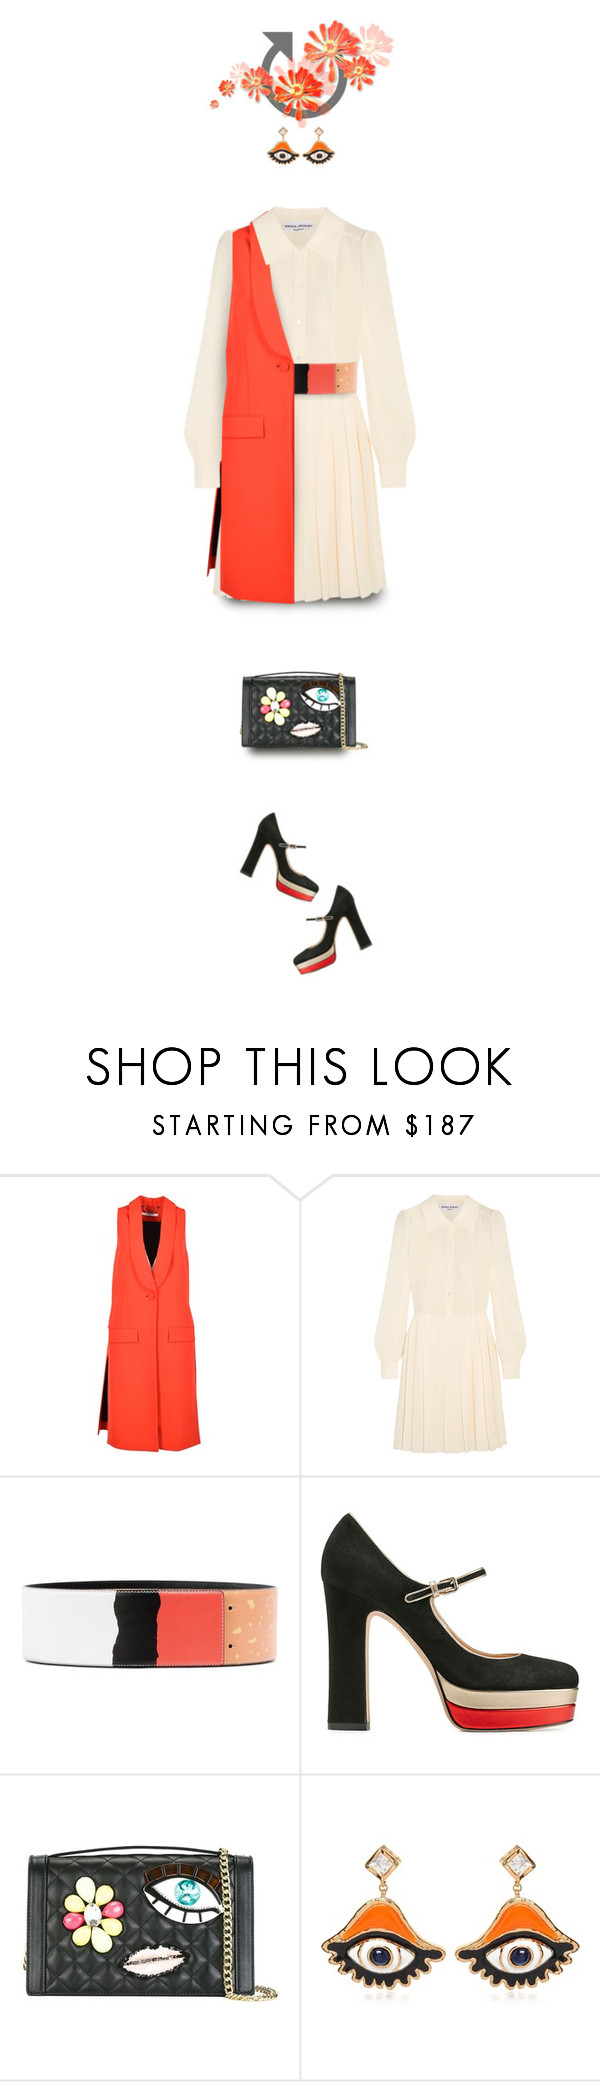 """""""angel eyes"""" by collagette ❤ liked on Polyvore featuring Givenchy, Sonia Rykiel, Moschino, Valentino, Boutique Moschino and Dsquared2"""